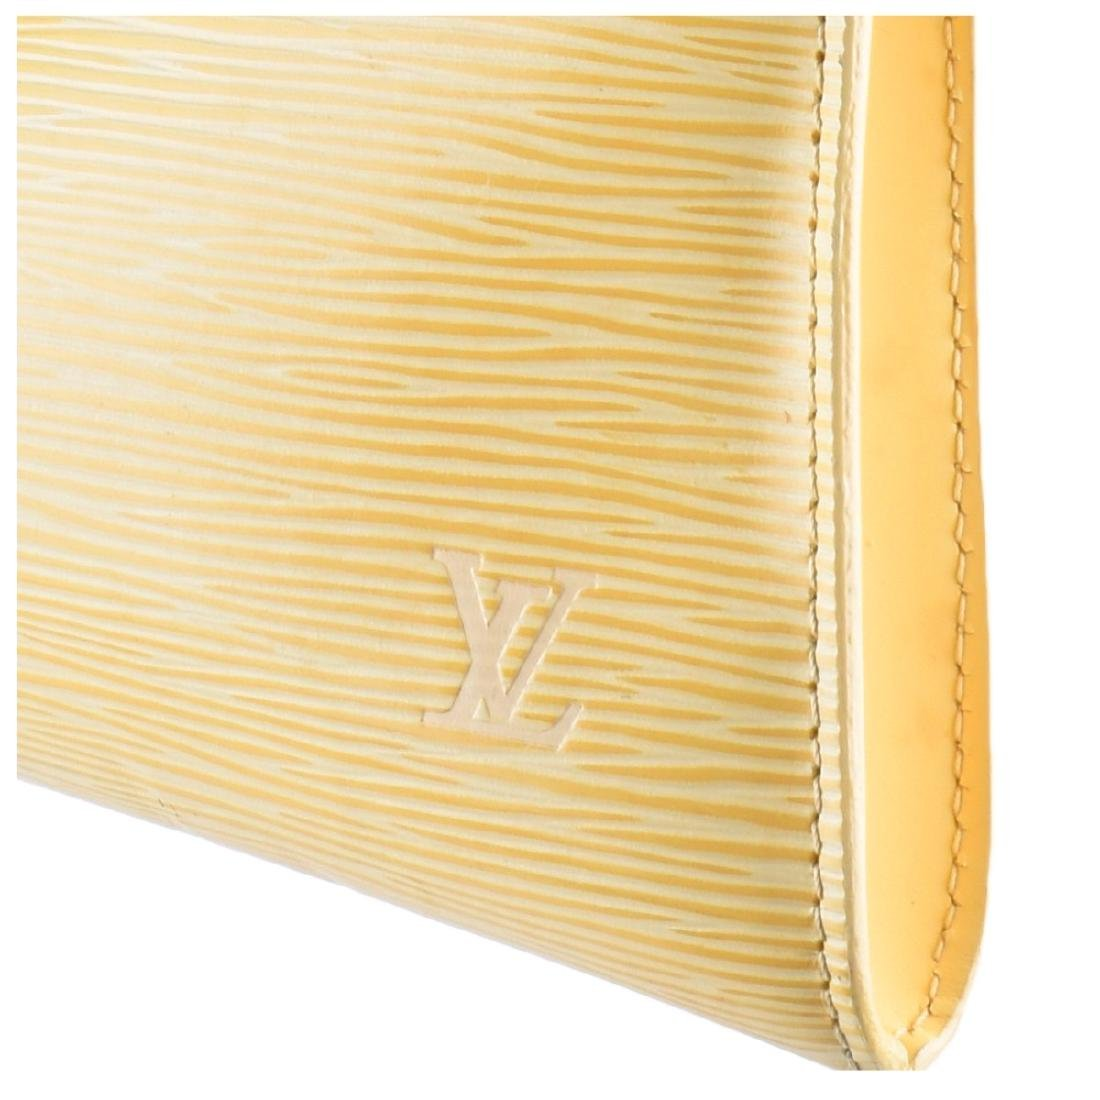 Louis Vuitton Vanilla Epi Leather Accessory Pouch - 3